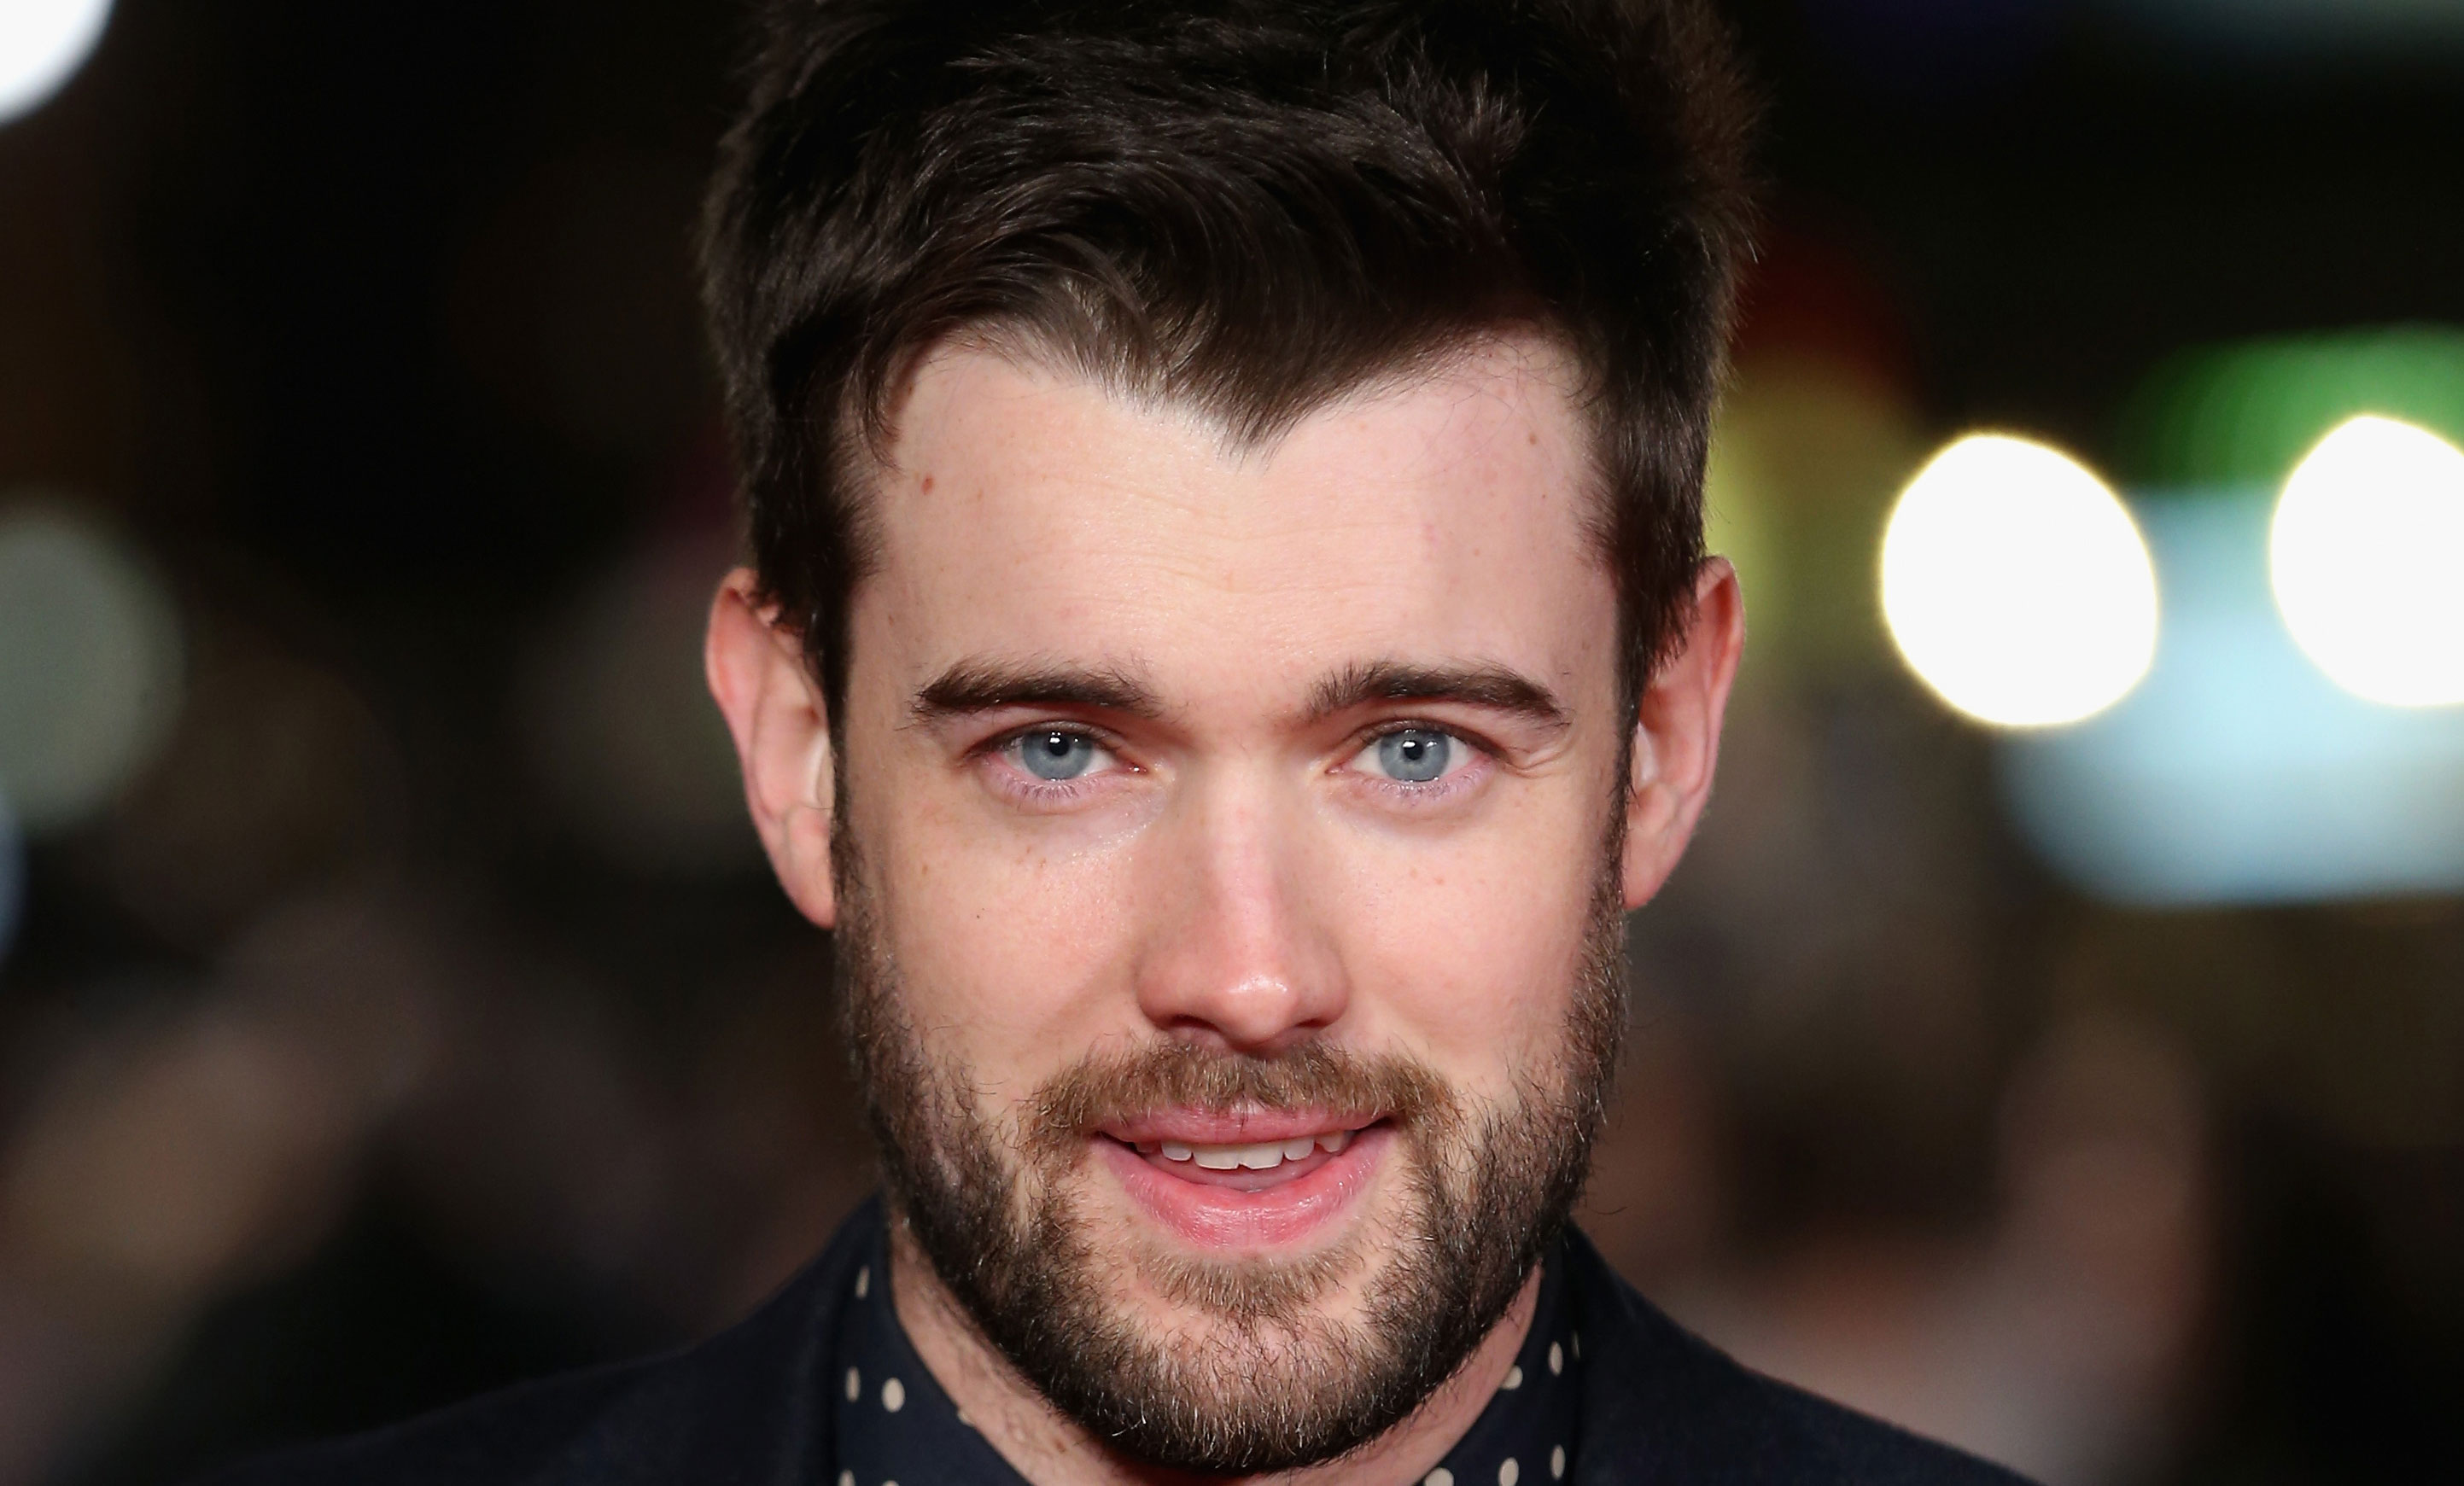 Bounty Hunters On Sky Jack Whitehall Says His Dad Michael Whitehall Has Gone Solo Radio Times